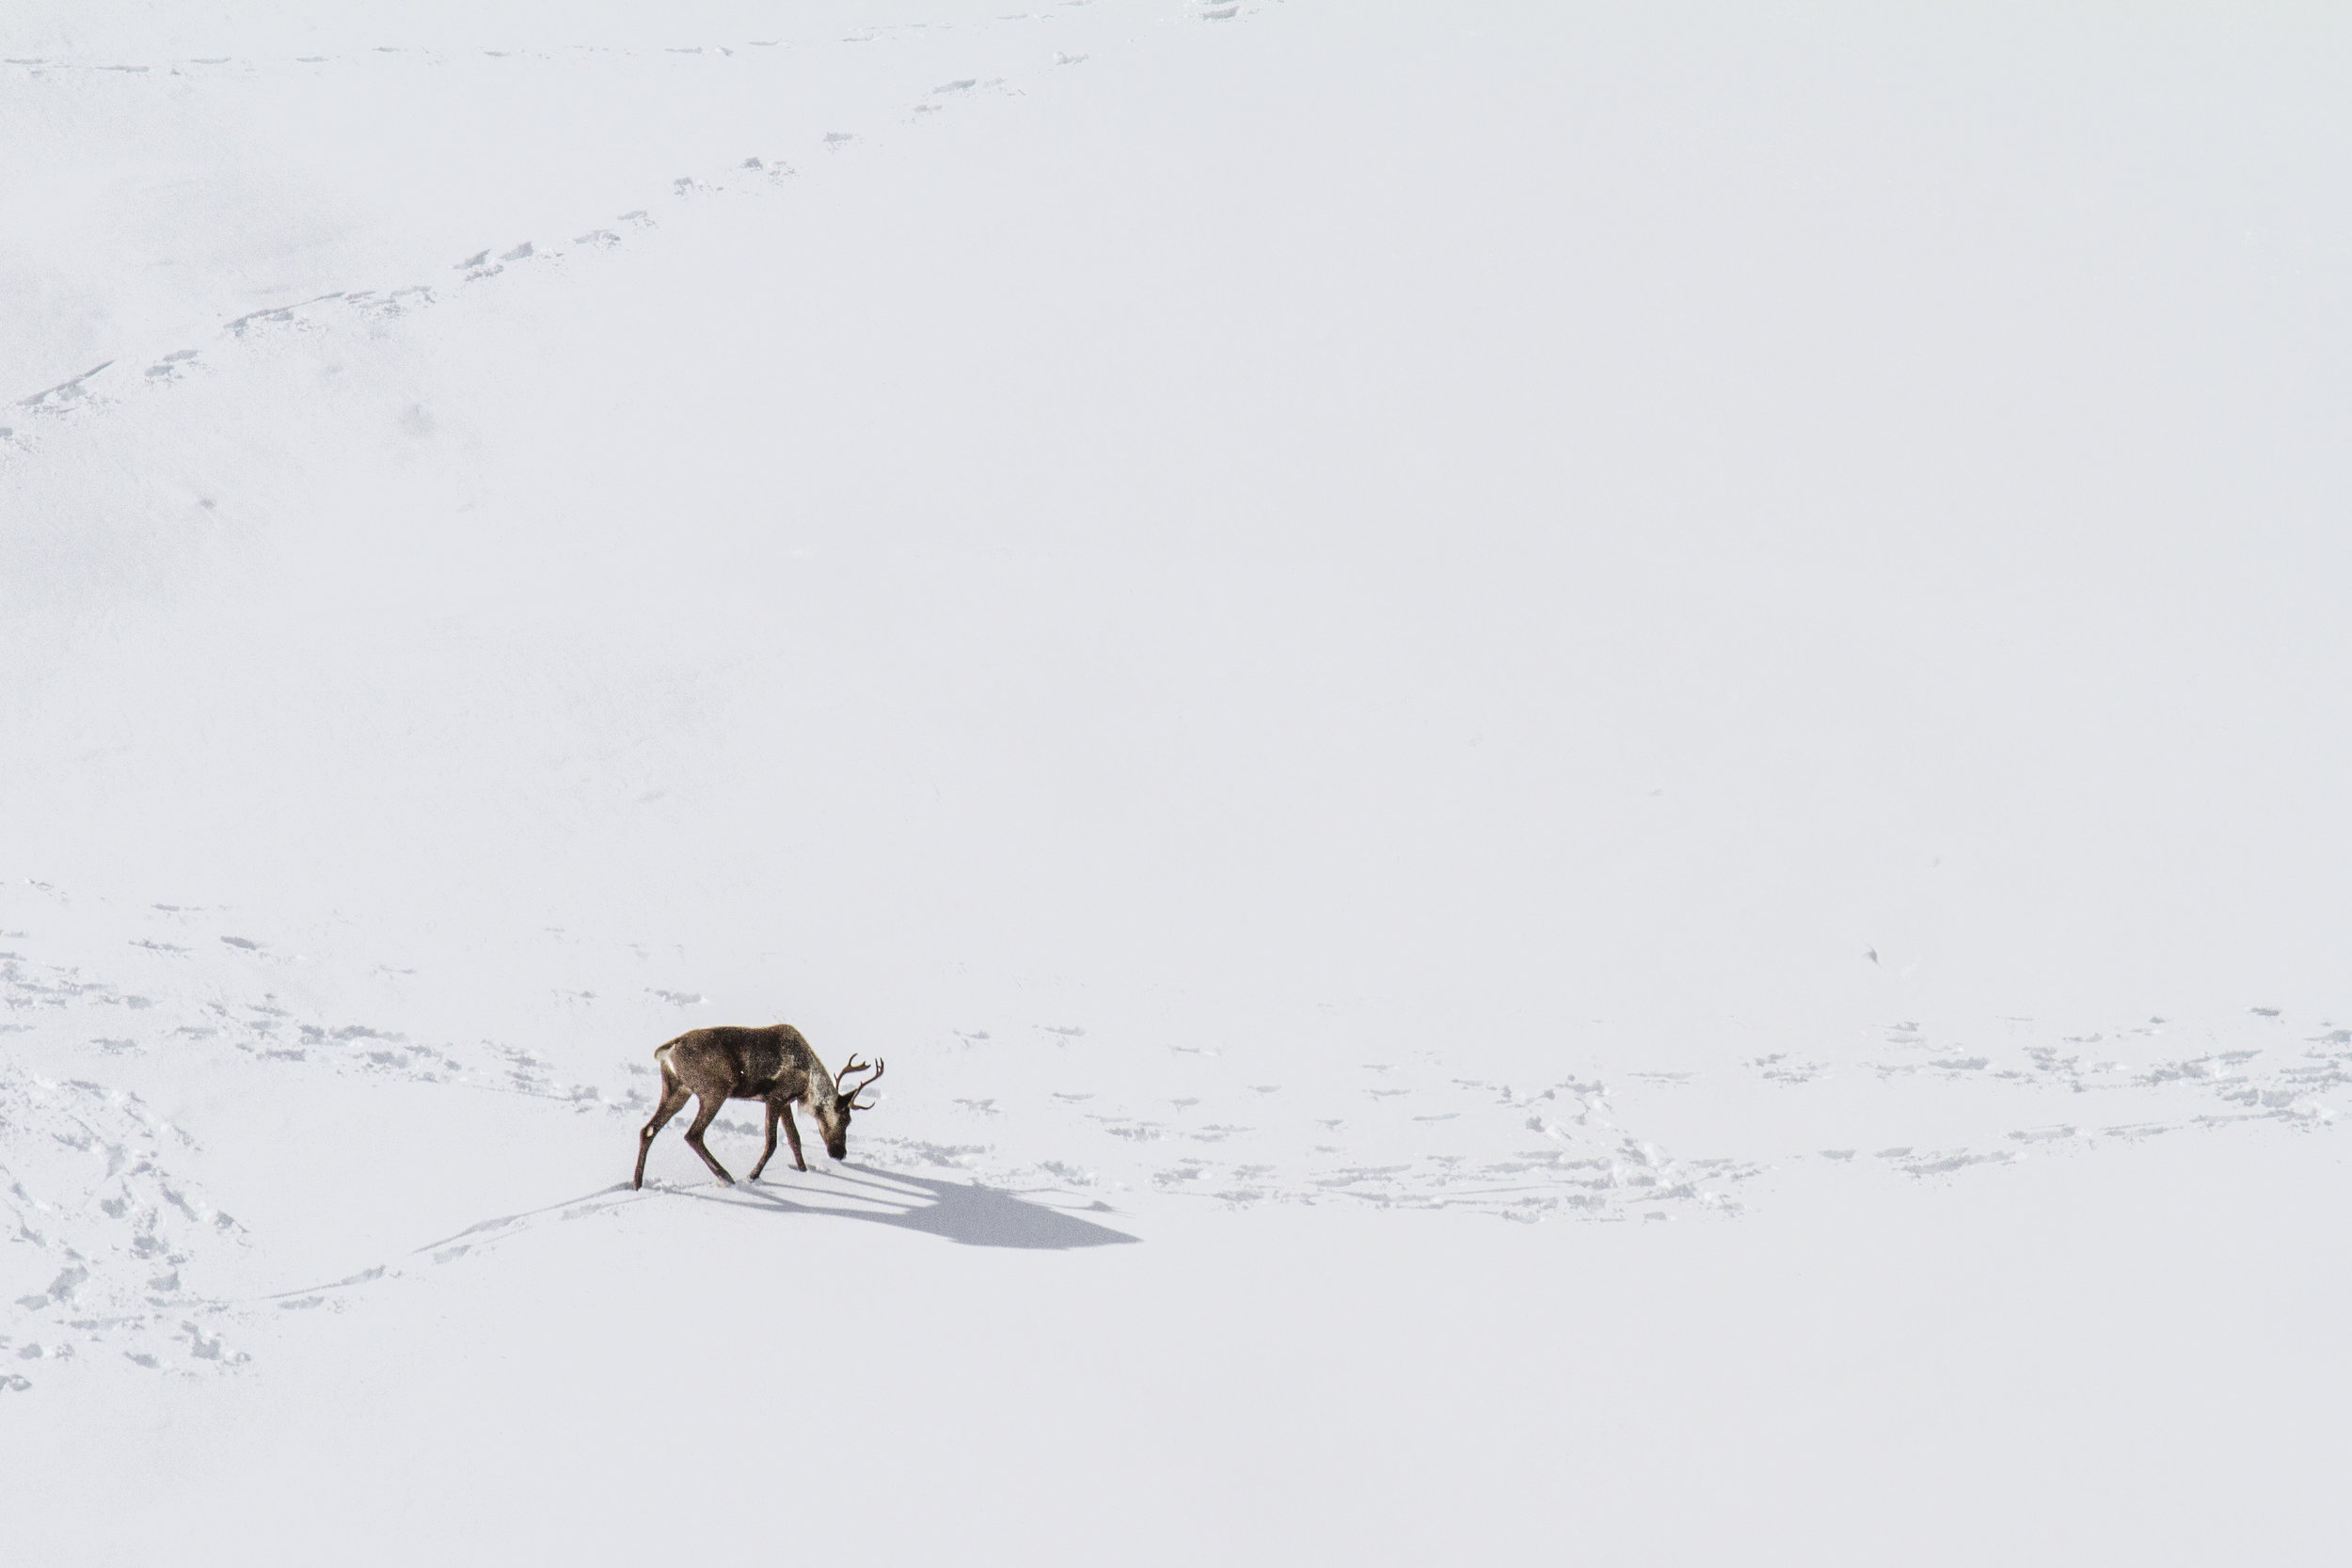 A population on the brink - With the last herd of mountain caribou extirpated from the wild in 2019, the total population of mountain caribou is estimated at less than 1500 across all of British Columbia and has been in steady decline for decades.